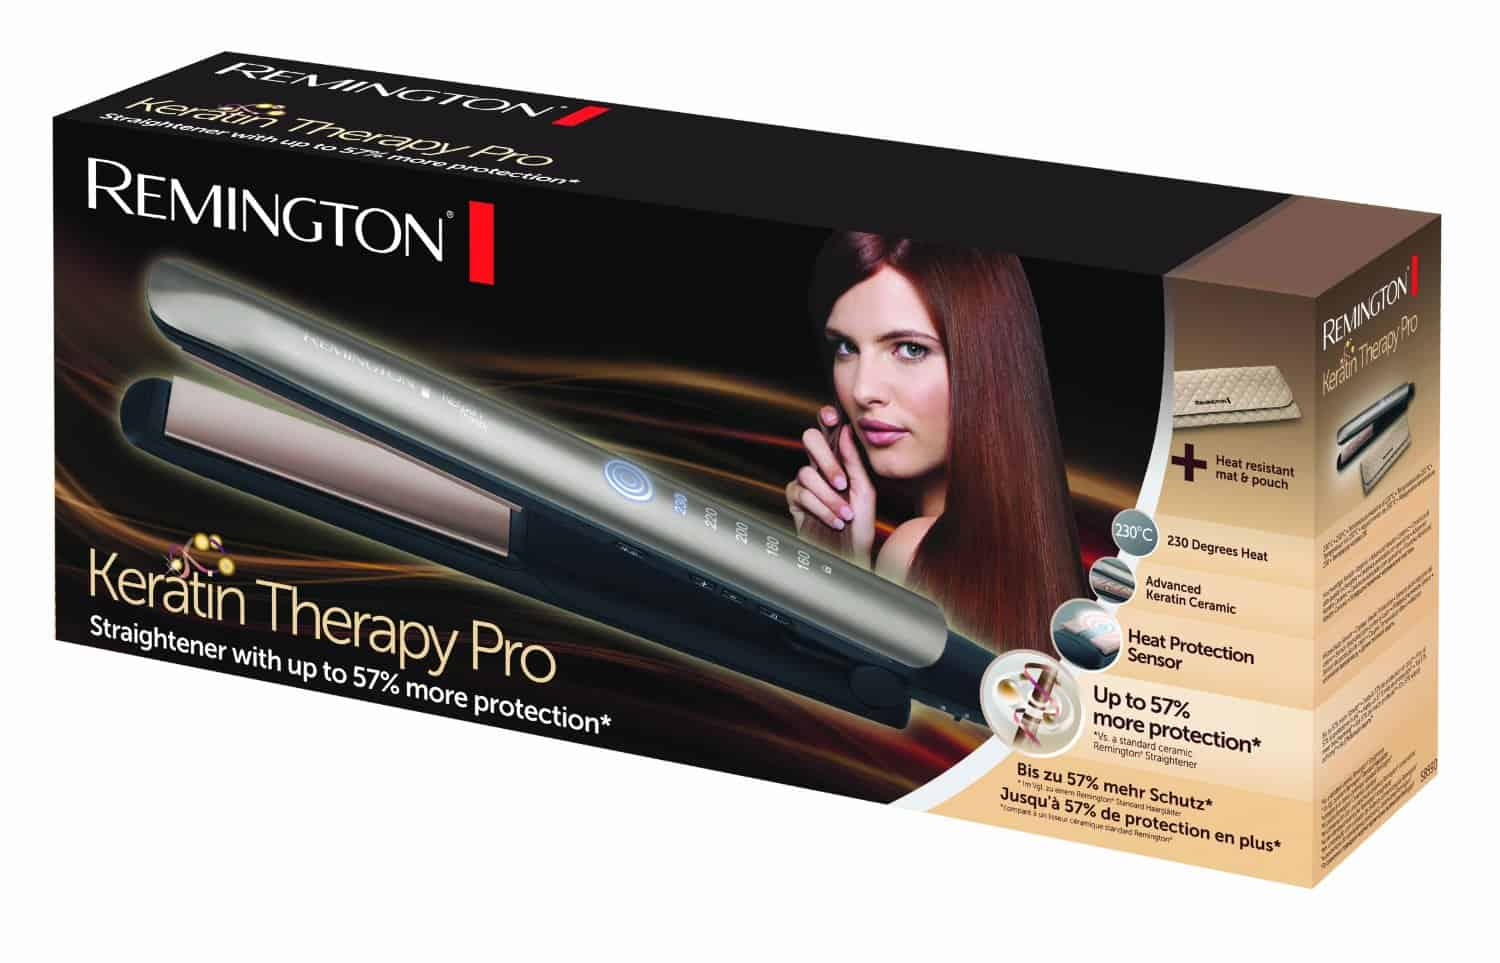 Remington S8590 Keritin Therepy Pro Straightener box